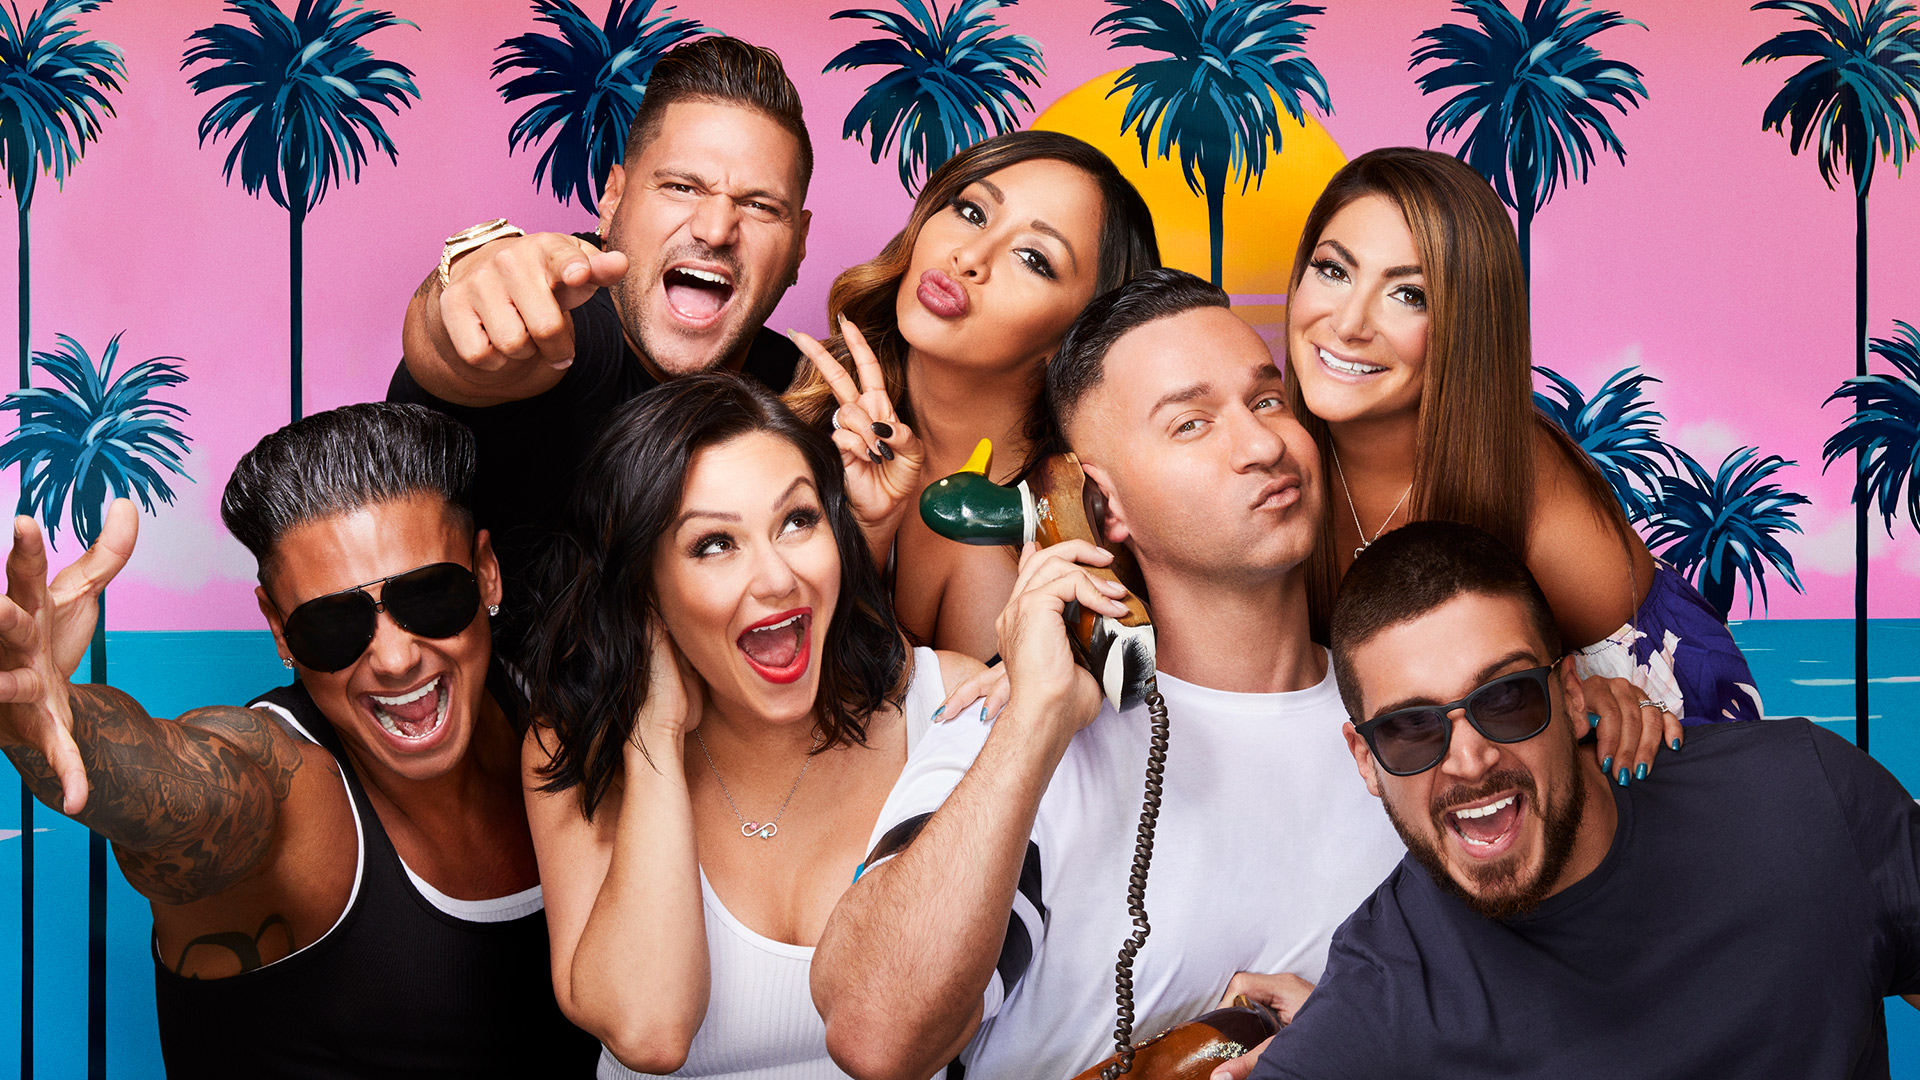 jersey shore family vacation episode 6 online free